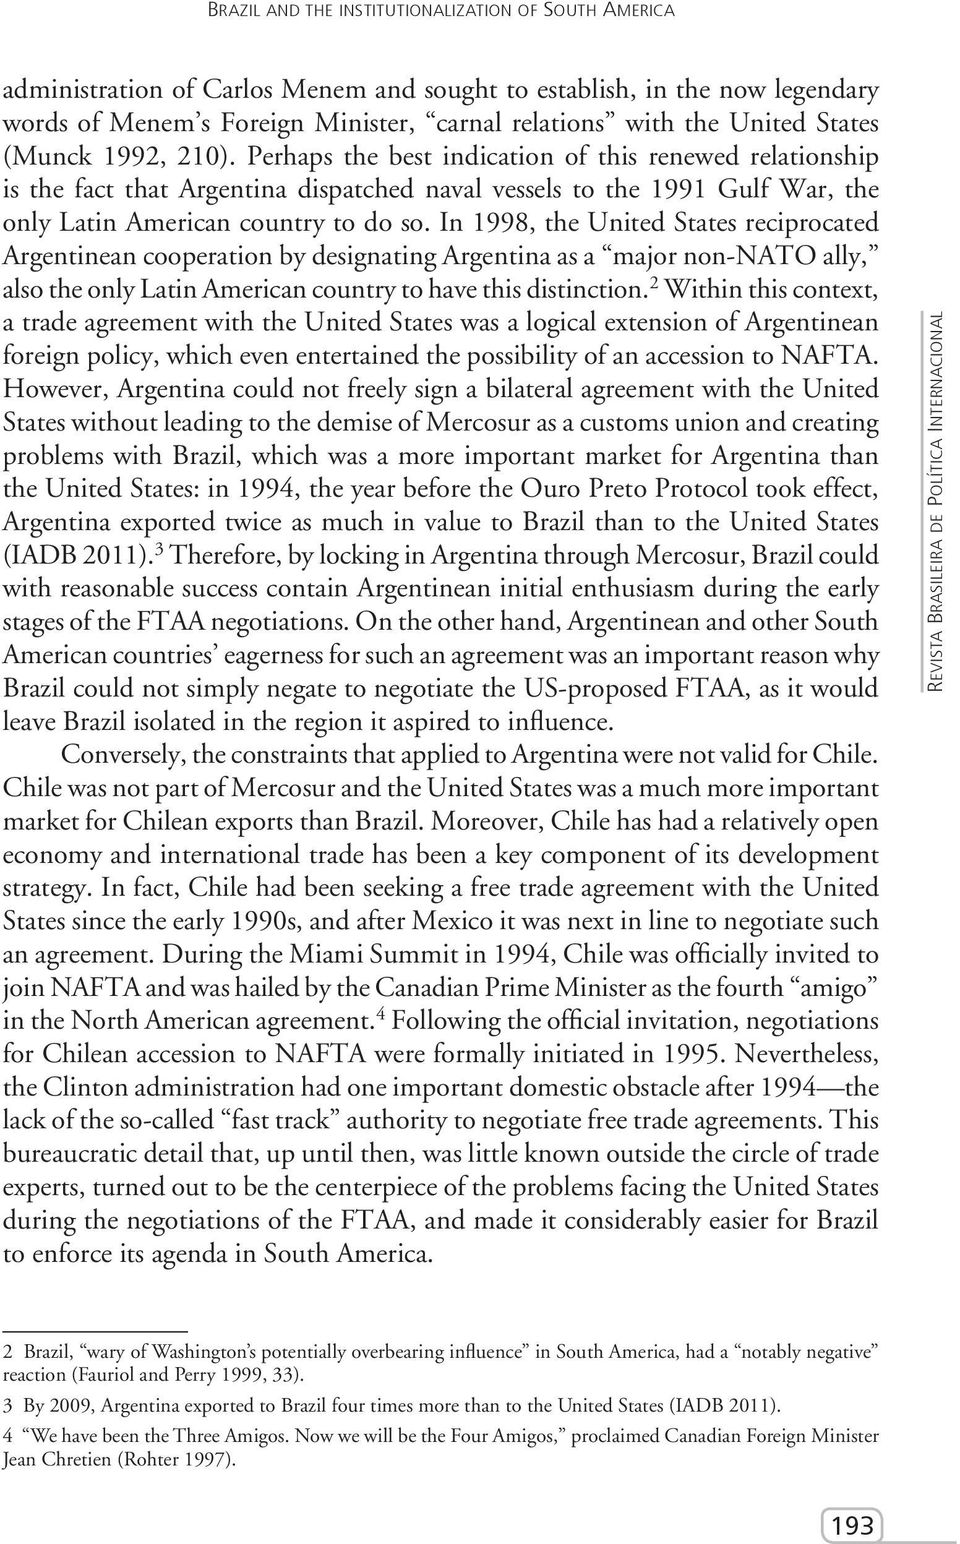 In 1998, the United States reciprocated Argentinean cooperation by designating Argentina as a major non-nato ally, also the only Latin American country to have this distinction.